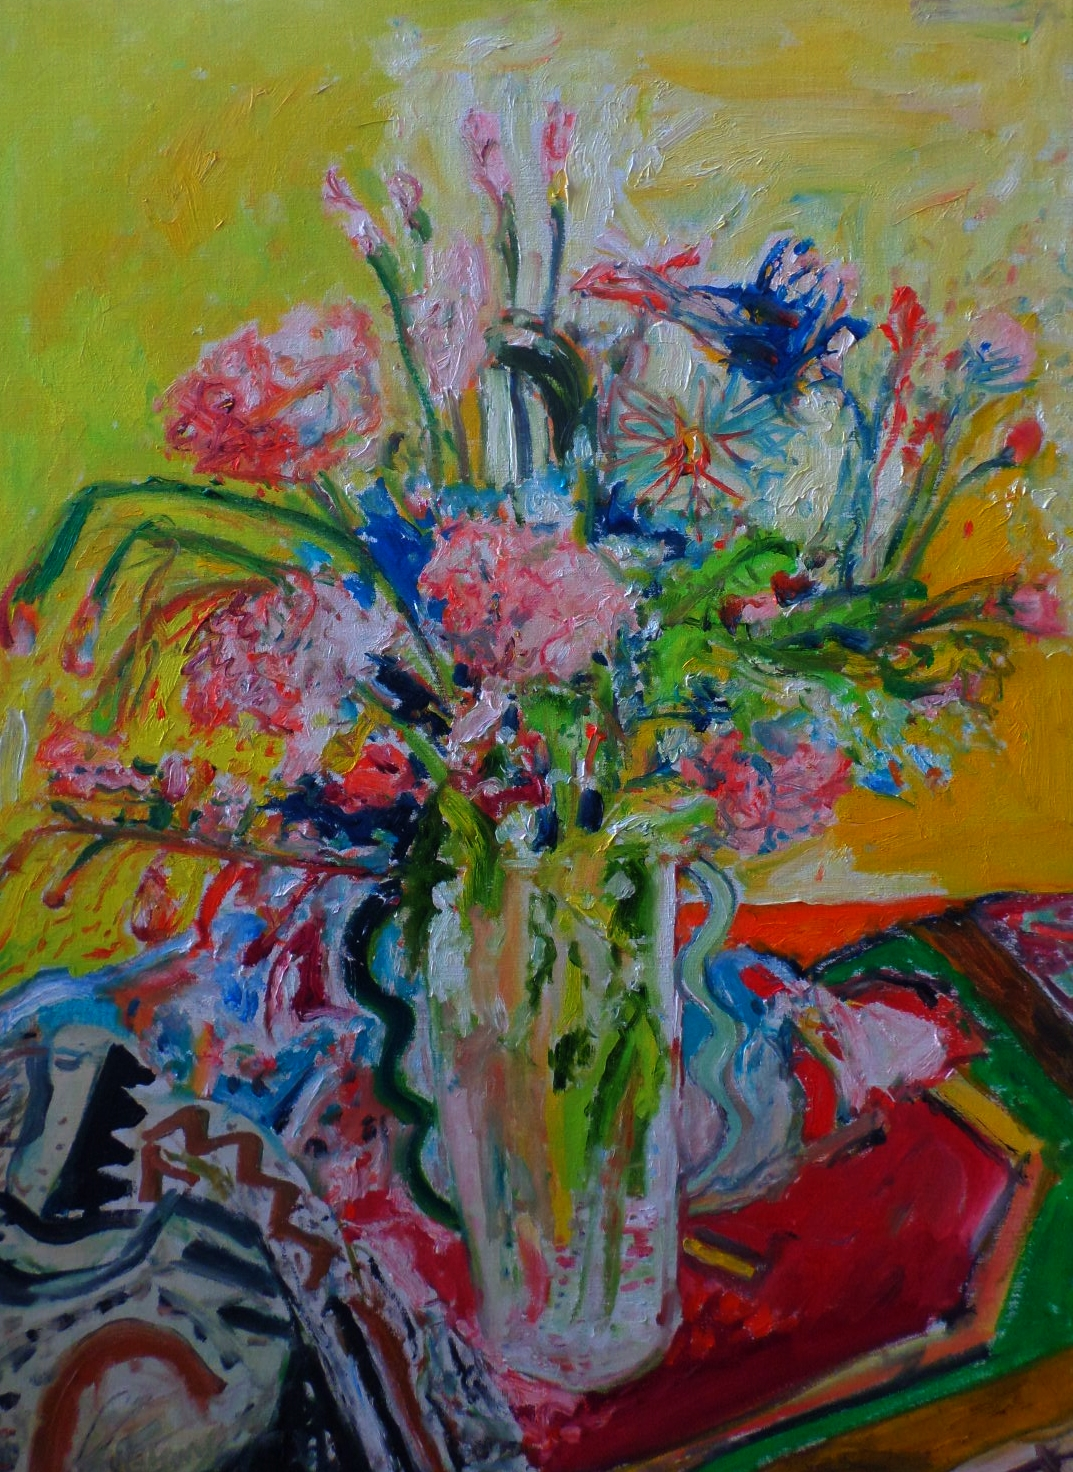 Oil on canvas. Still life Flowers by John Bellany.